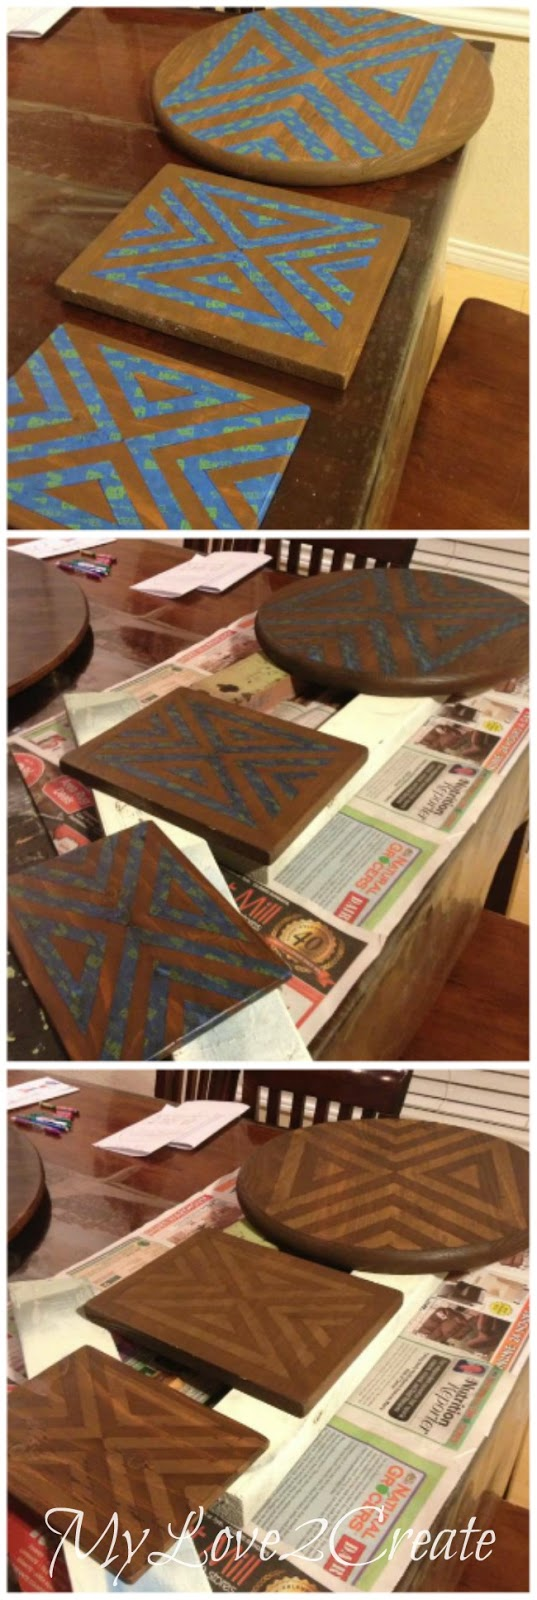 staining over taped pattern with darker stain to create two toned effect